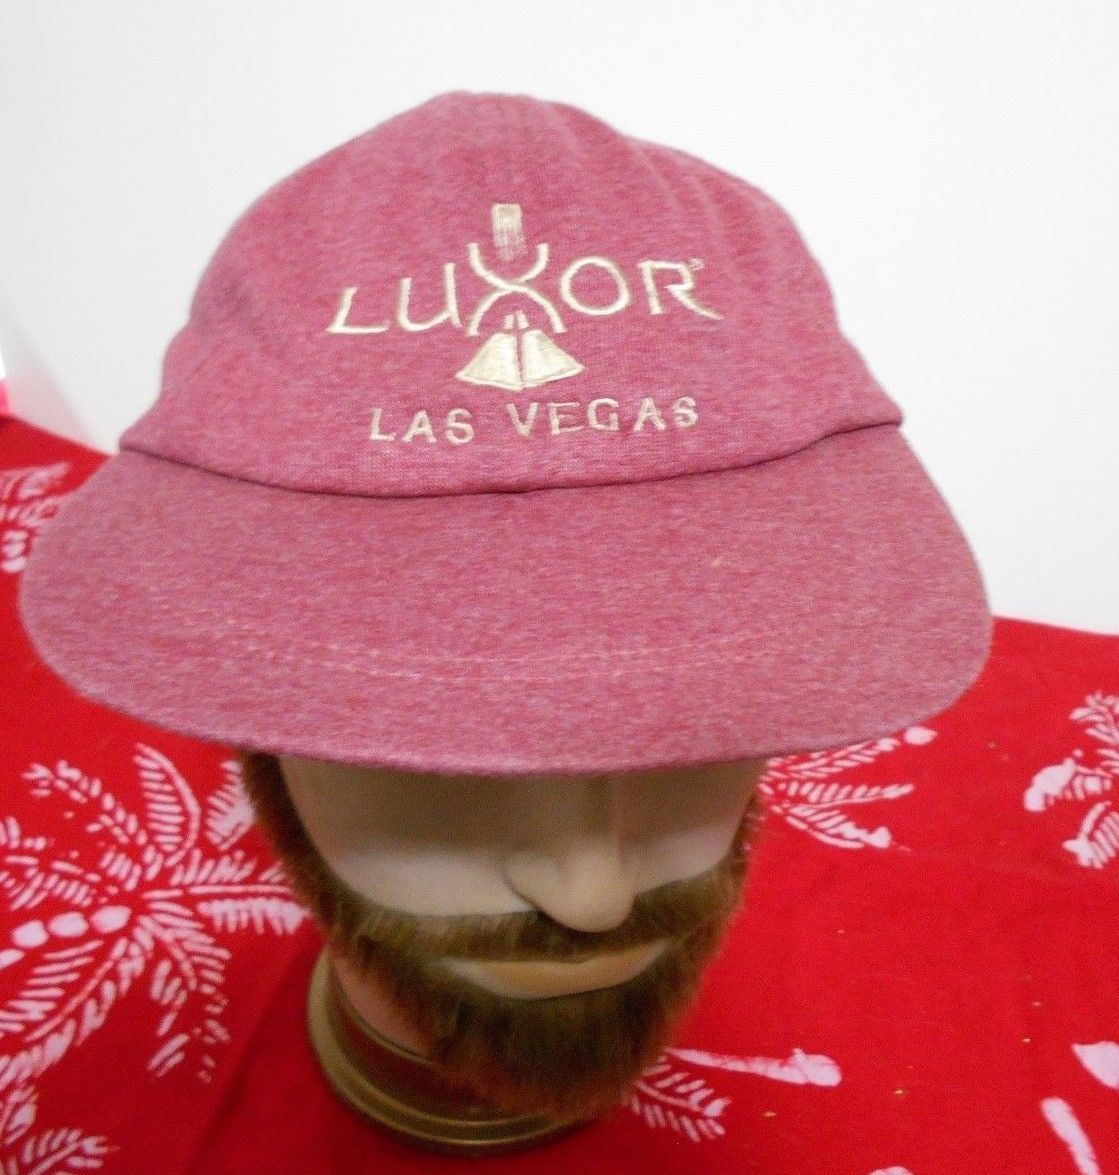 Primary image for Luxor Hotel Las Vegas Pink Embroidered Adjustable Size  Baseball Trucker Hat